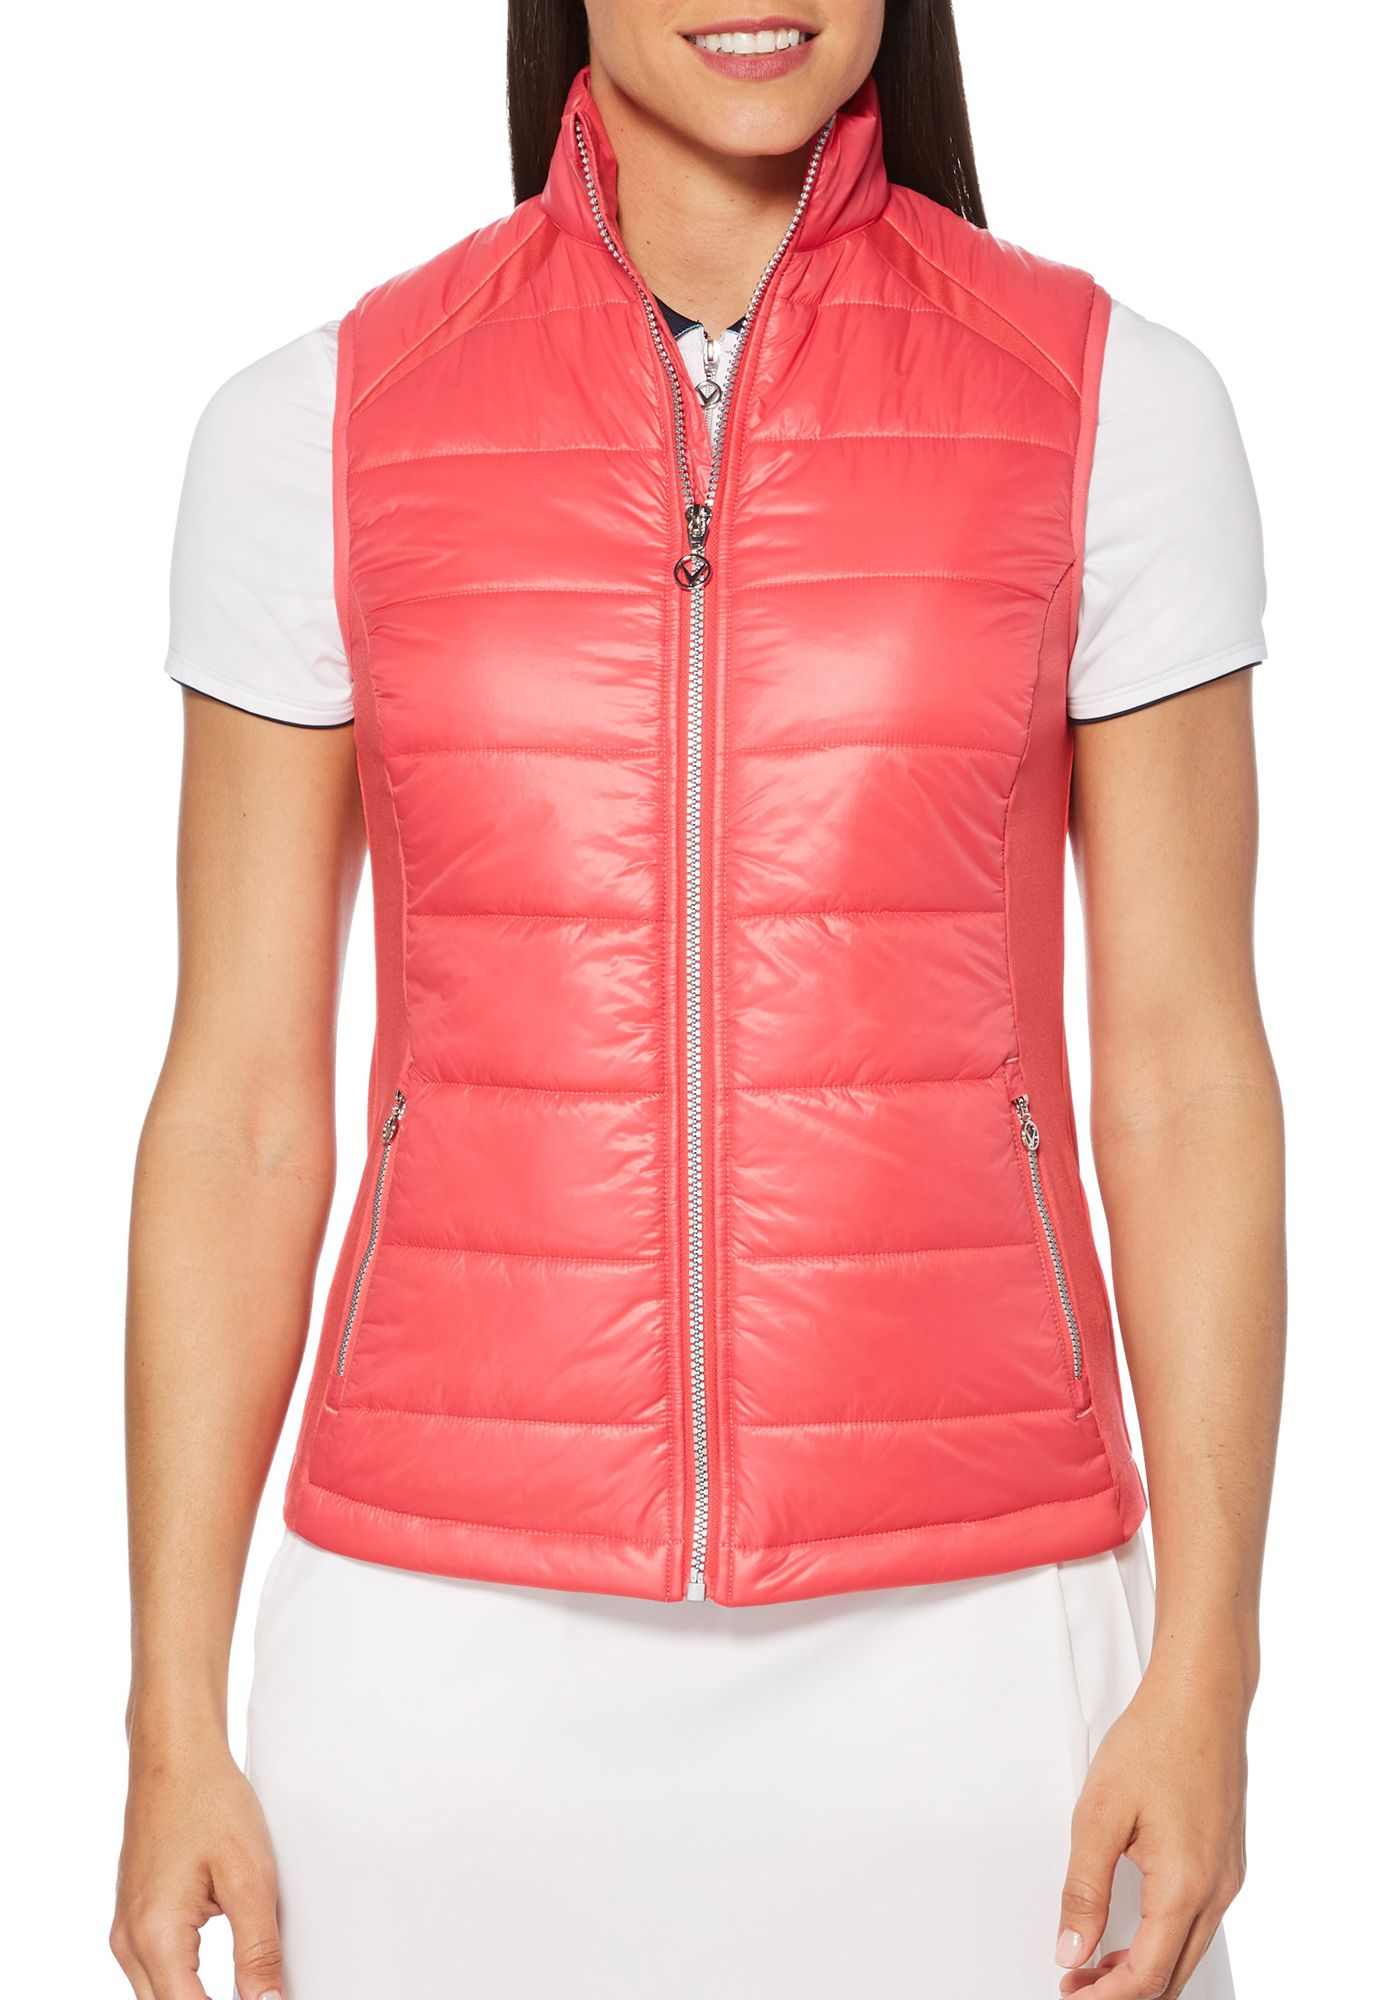 Callaway Women's Mixed Media Puffer Golf Vest